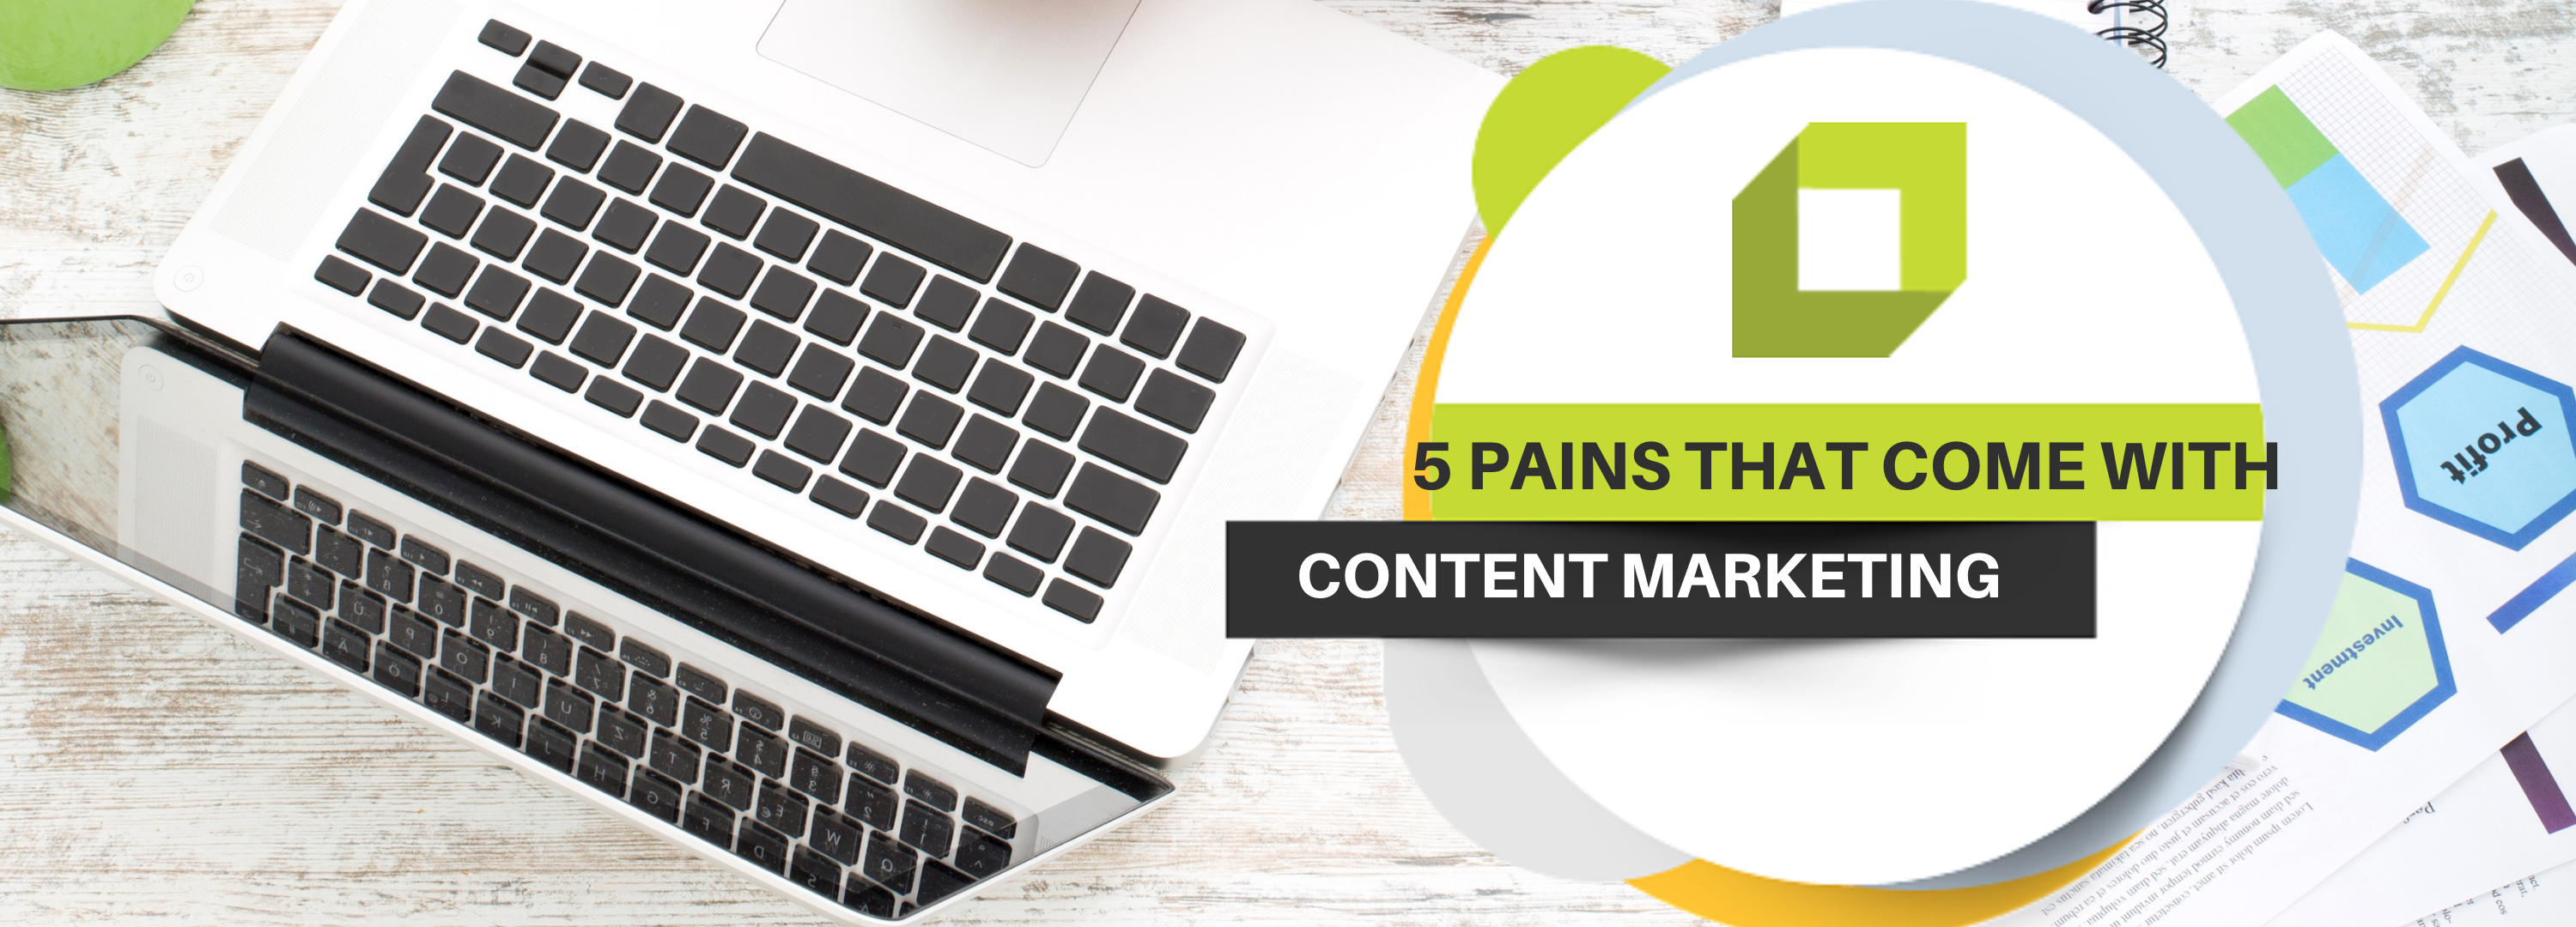 5 Pains That Come With Content Marketing